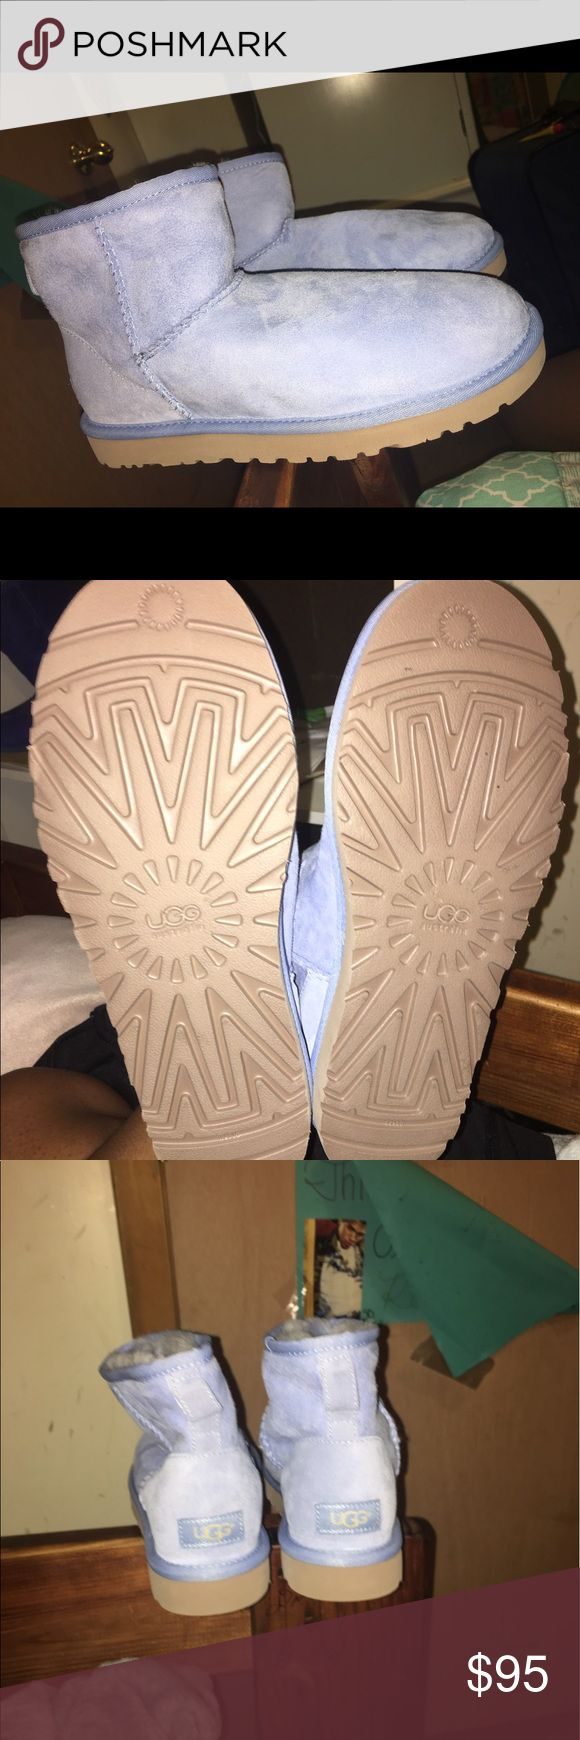 Ugg boots Light blue uggs. Never worn. Lean a little because the inserts were not in them but they are not worn down at all. Willing to send more pics and negotiate price! UGG Shoes Winter & Rain Boots